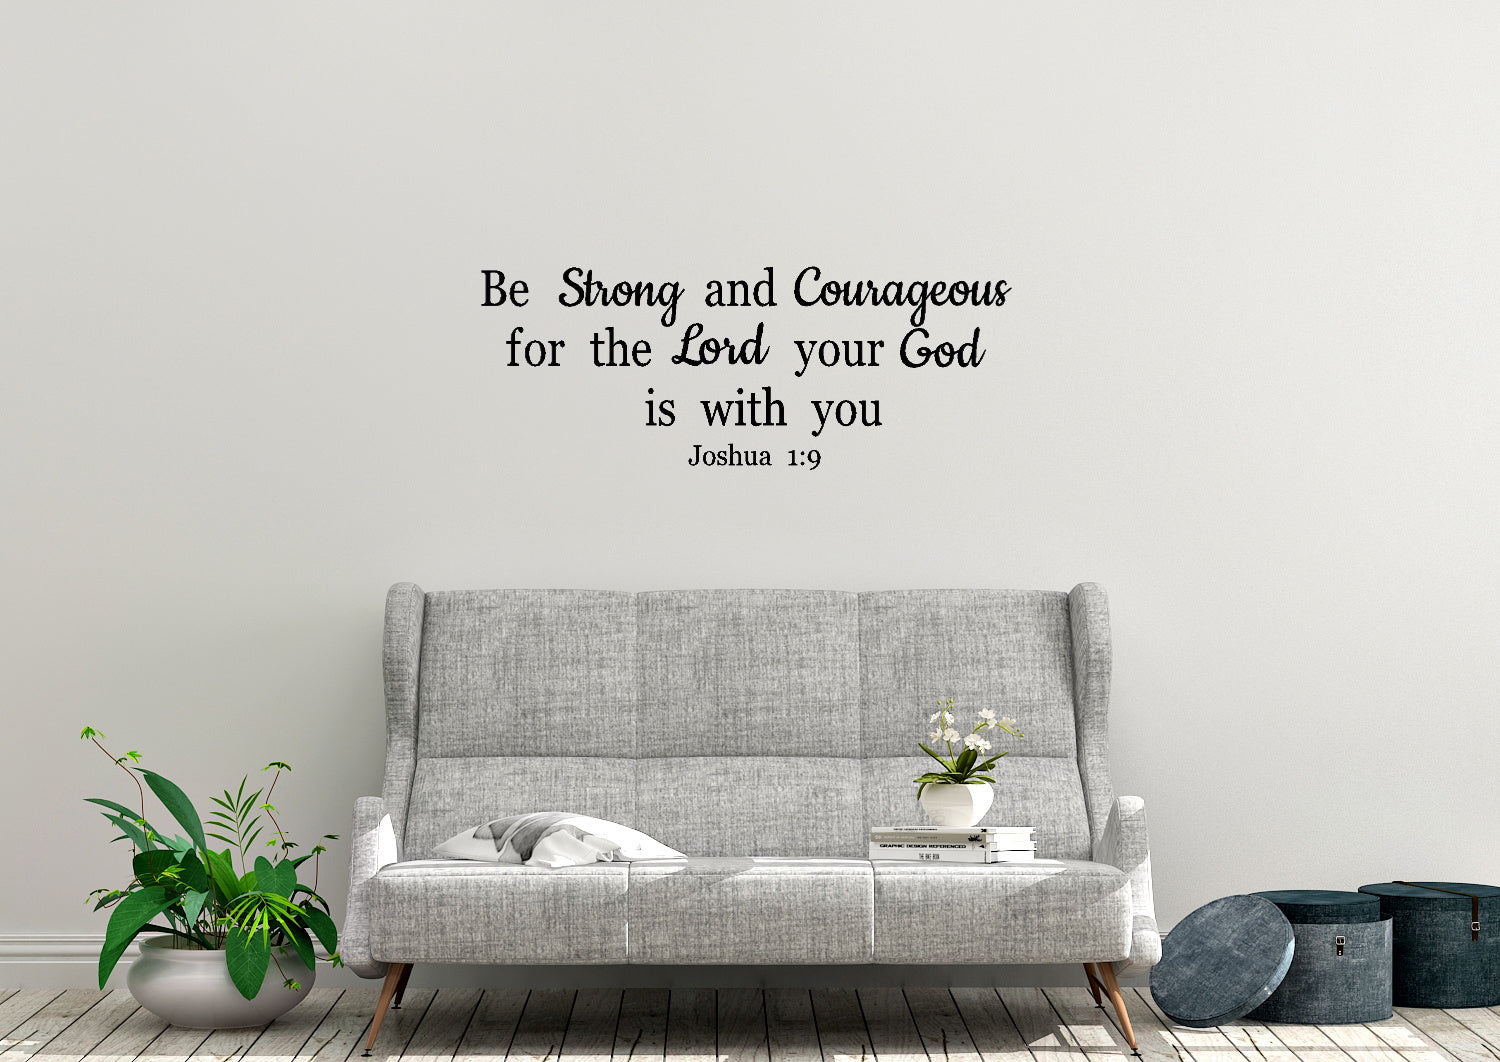 Be strong and courageous 1